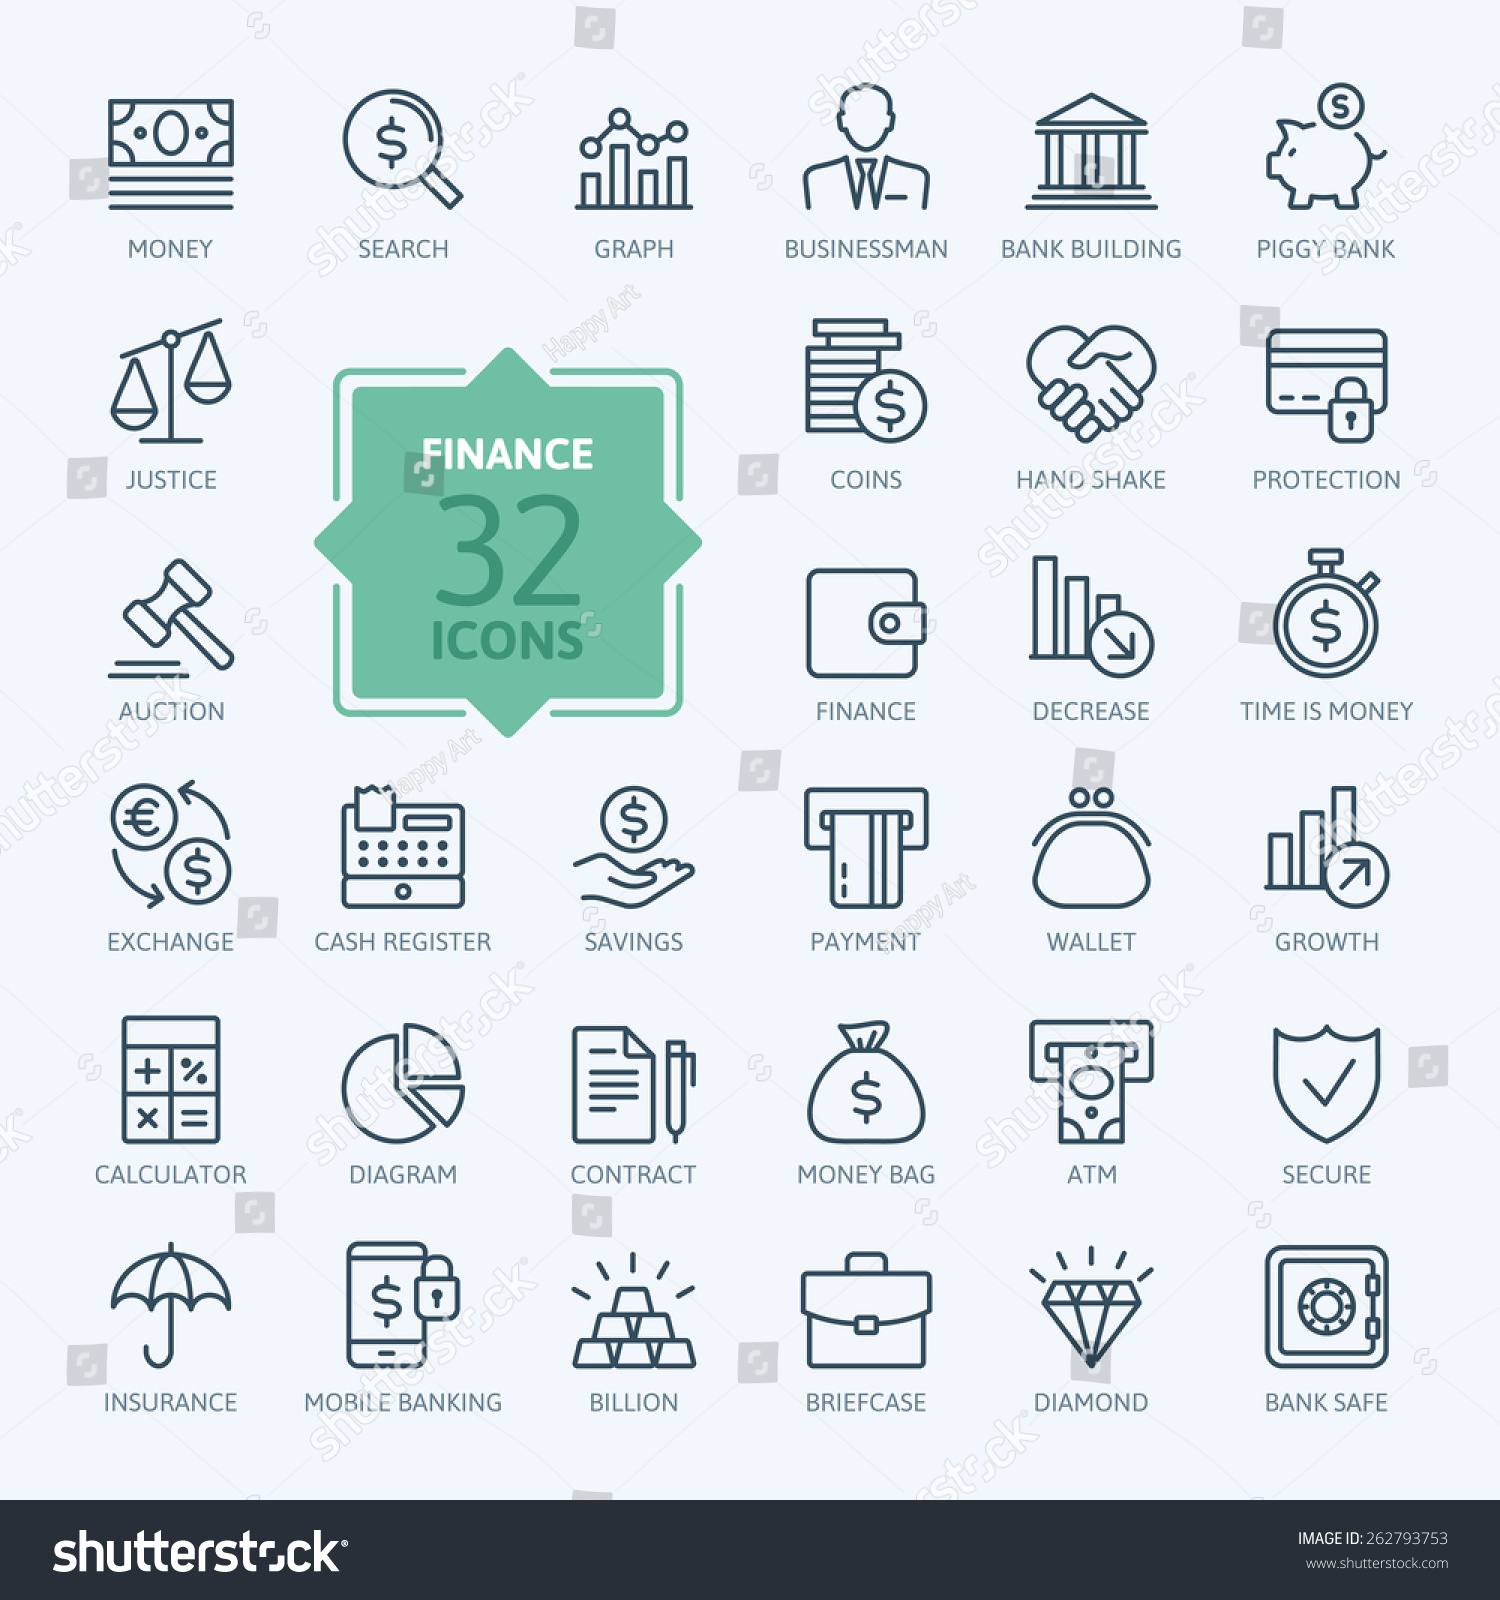 Thin line web icon set - money, finance, payments  #262793753